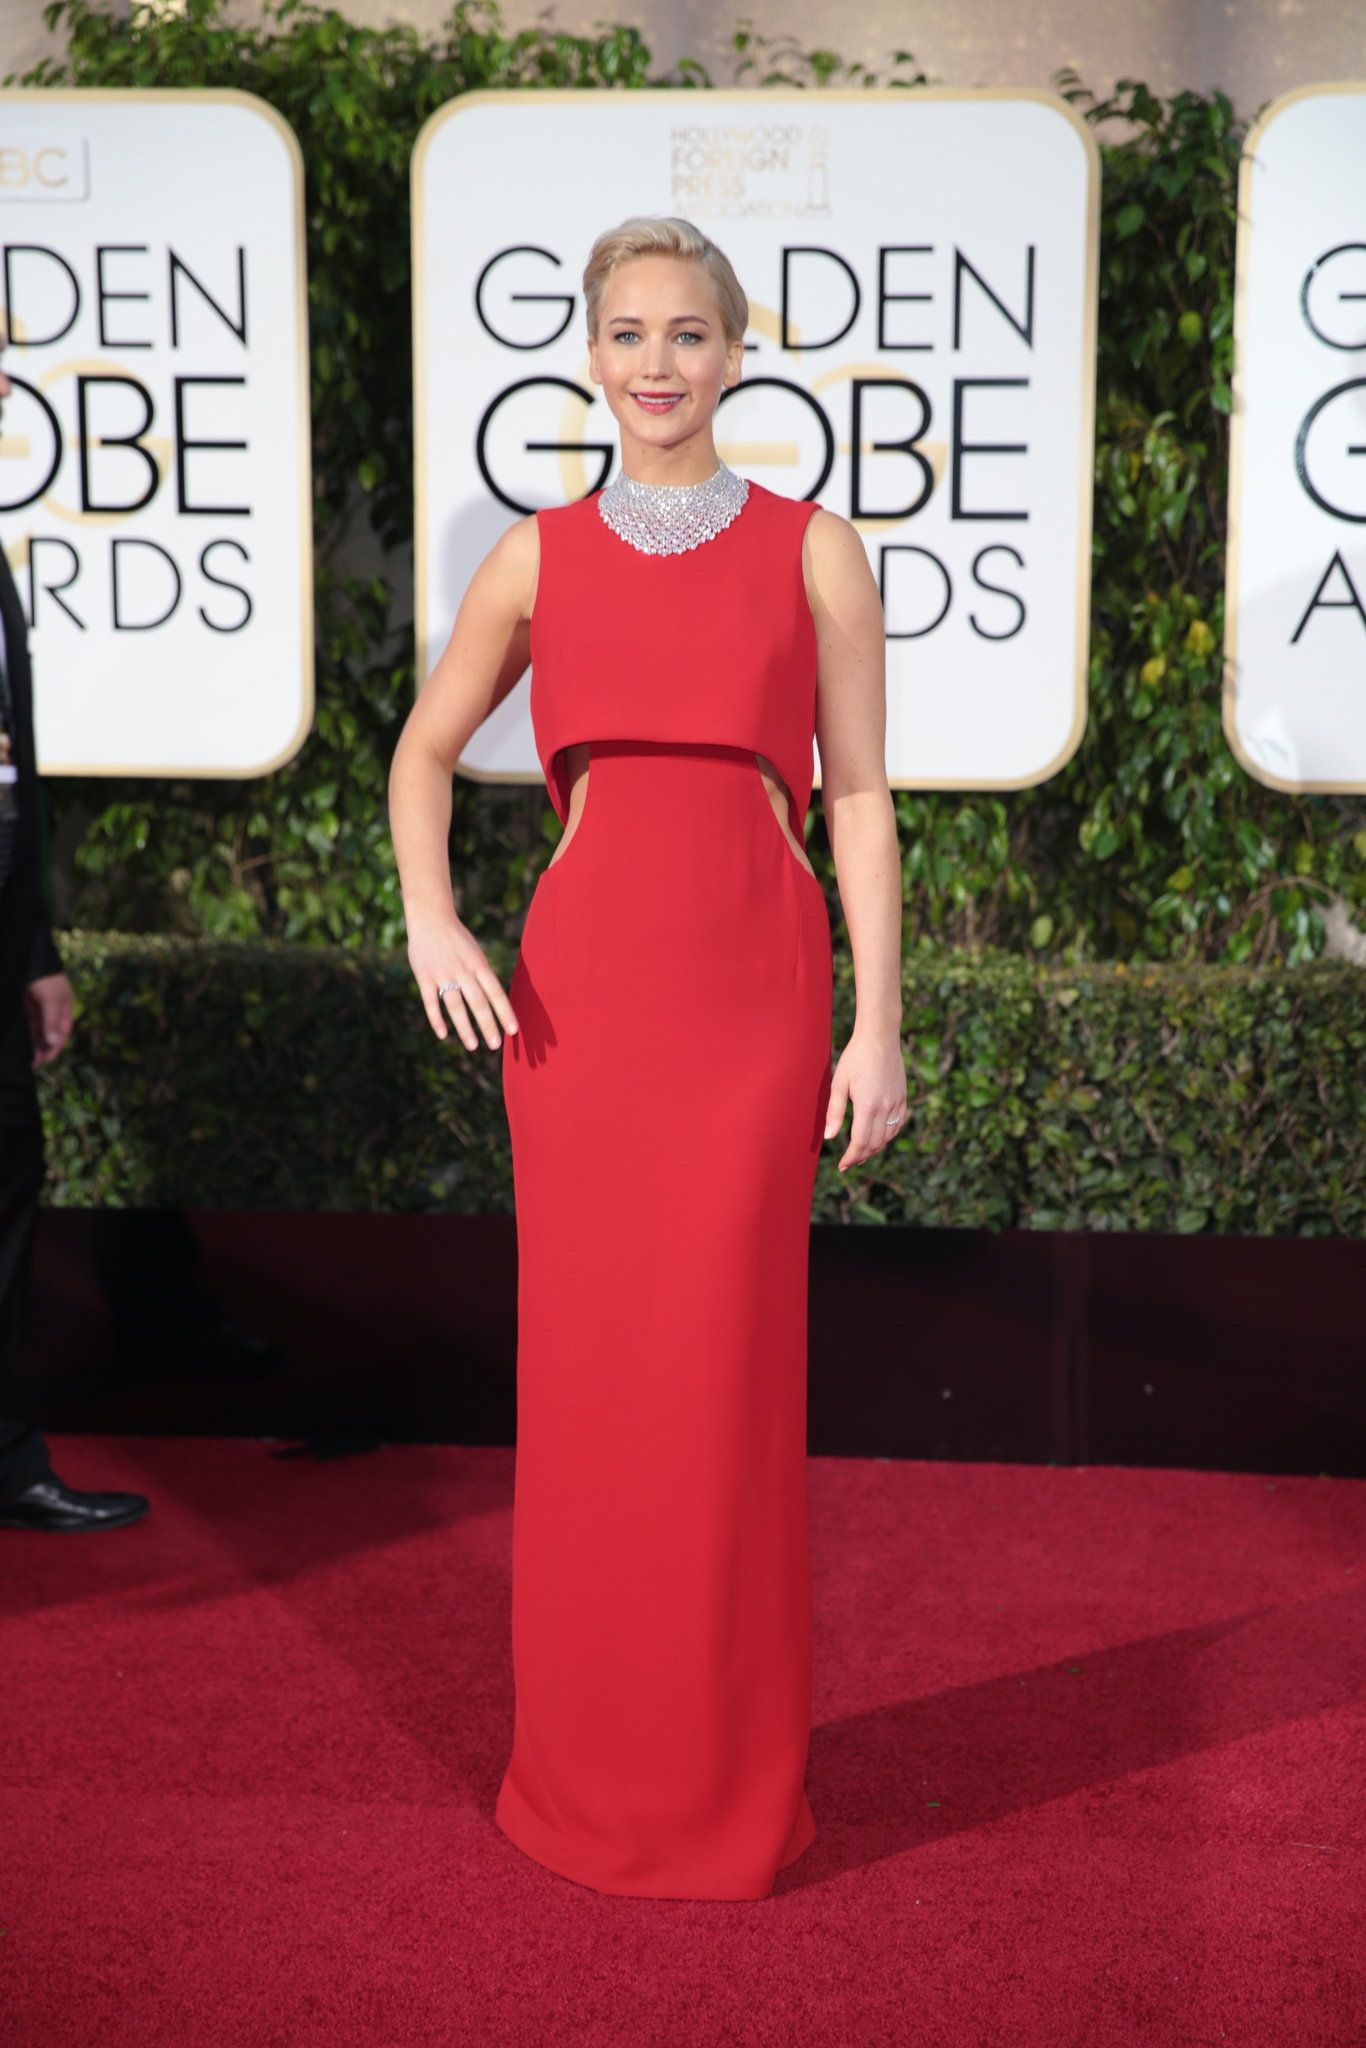 Golden Globes 2016 Red Carpet: See the Looks (Published ...